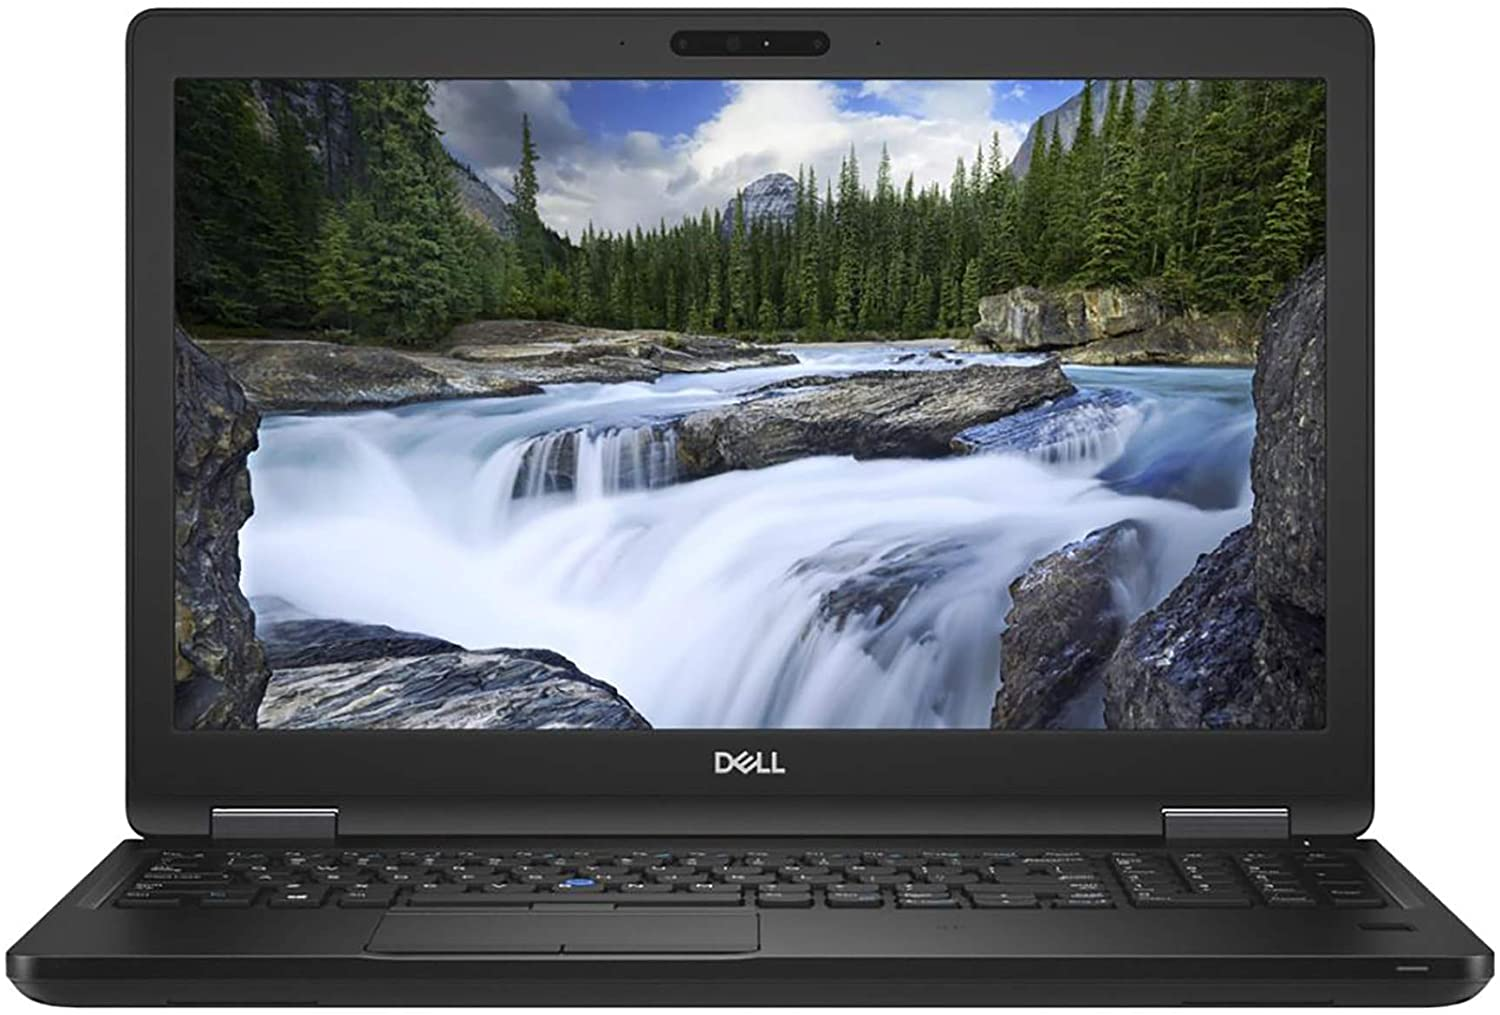 "Dell Latitude 5591 1920 x 1080 LCD Laptop with Intel Core i7-8850H 2.6 GHz Hexa-Core, 16GB RAM, 512GB SSD, 15.6"" (6TDK4)"